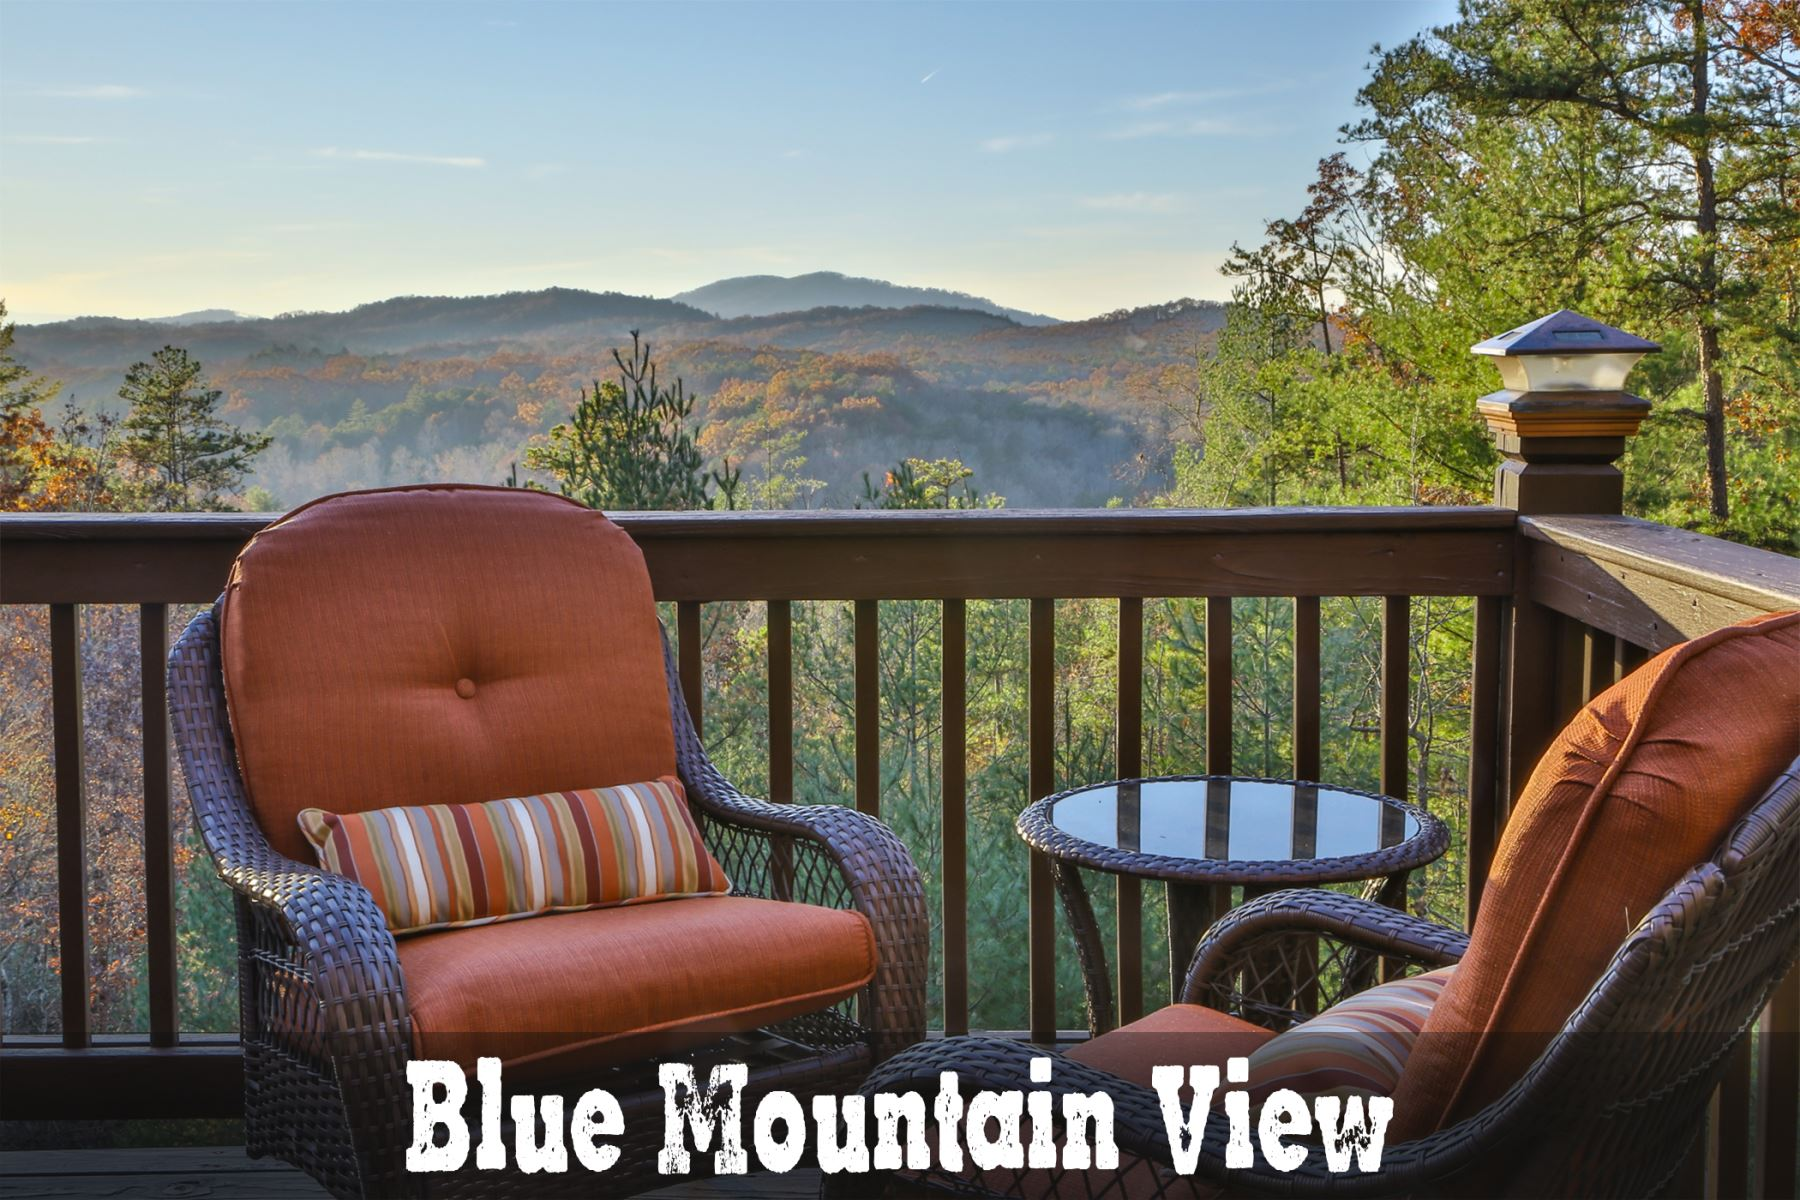 Blue Mountain View